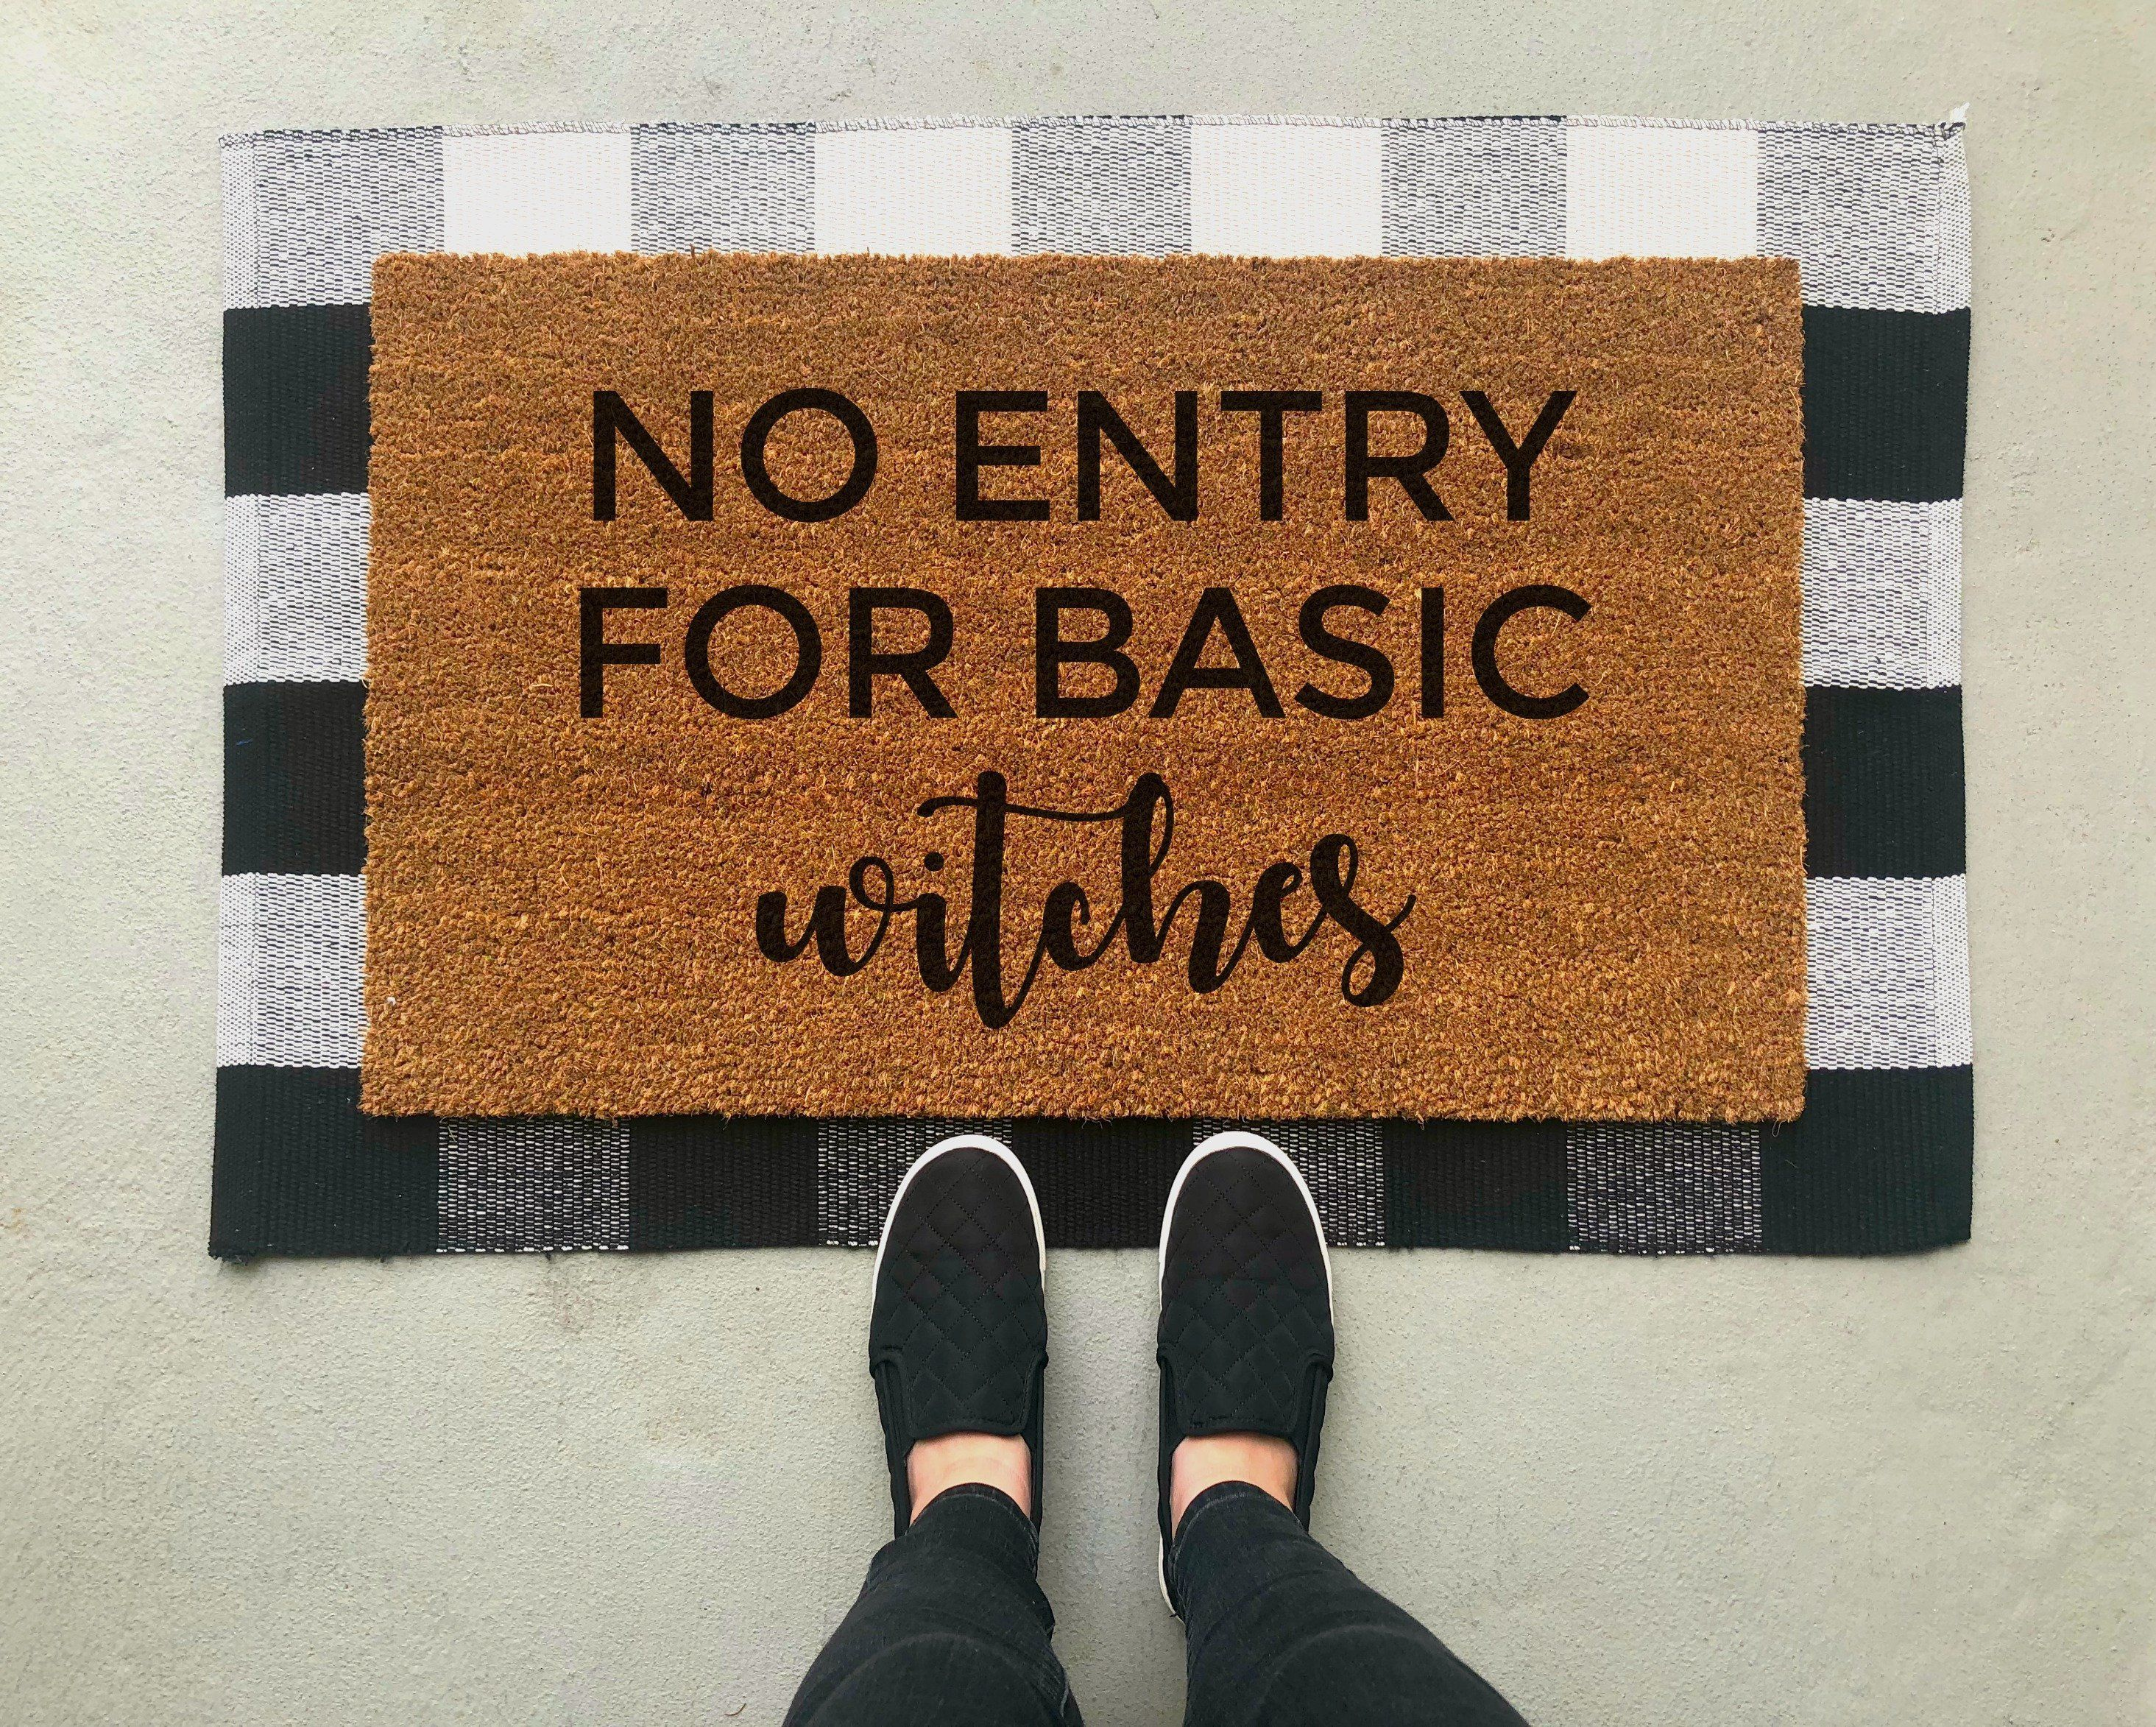 basic witches doormat in 2019 products christmas doormat, fallbasic witches doormat